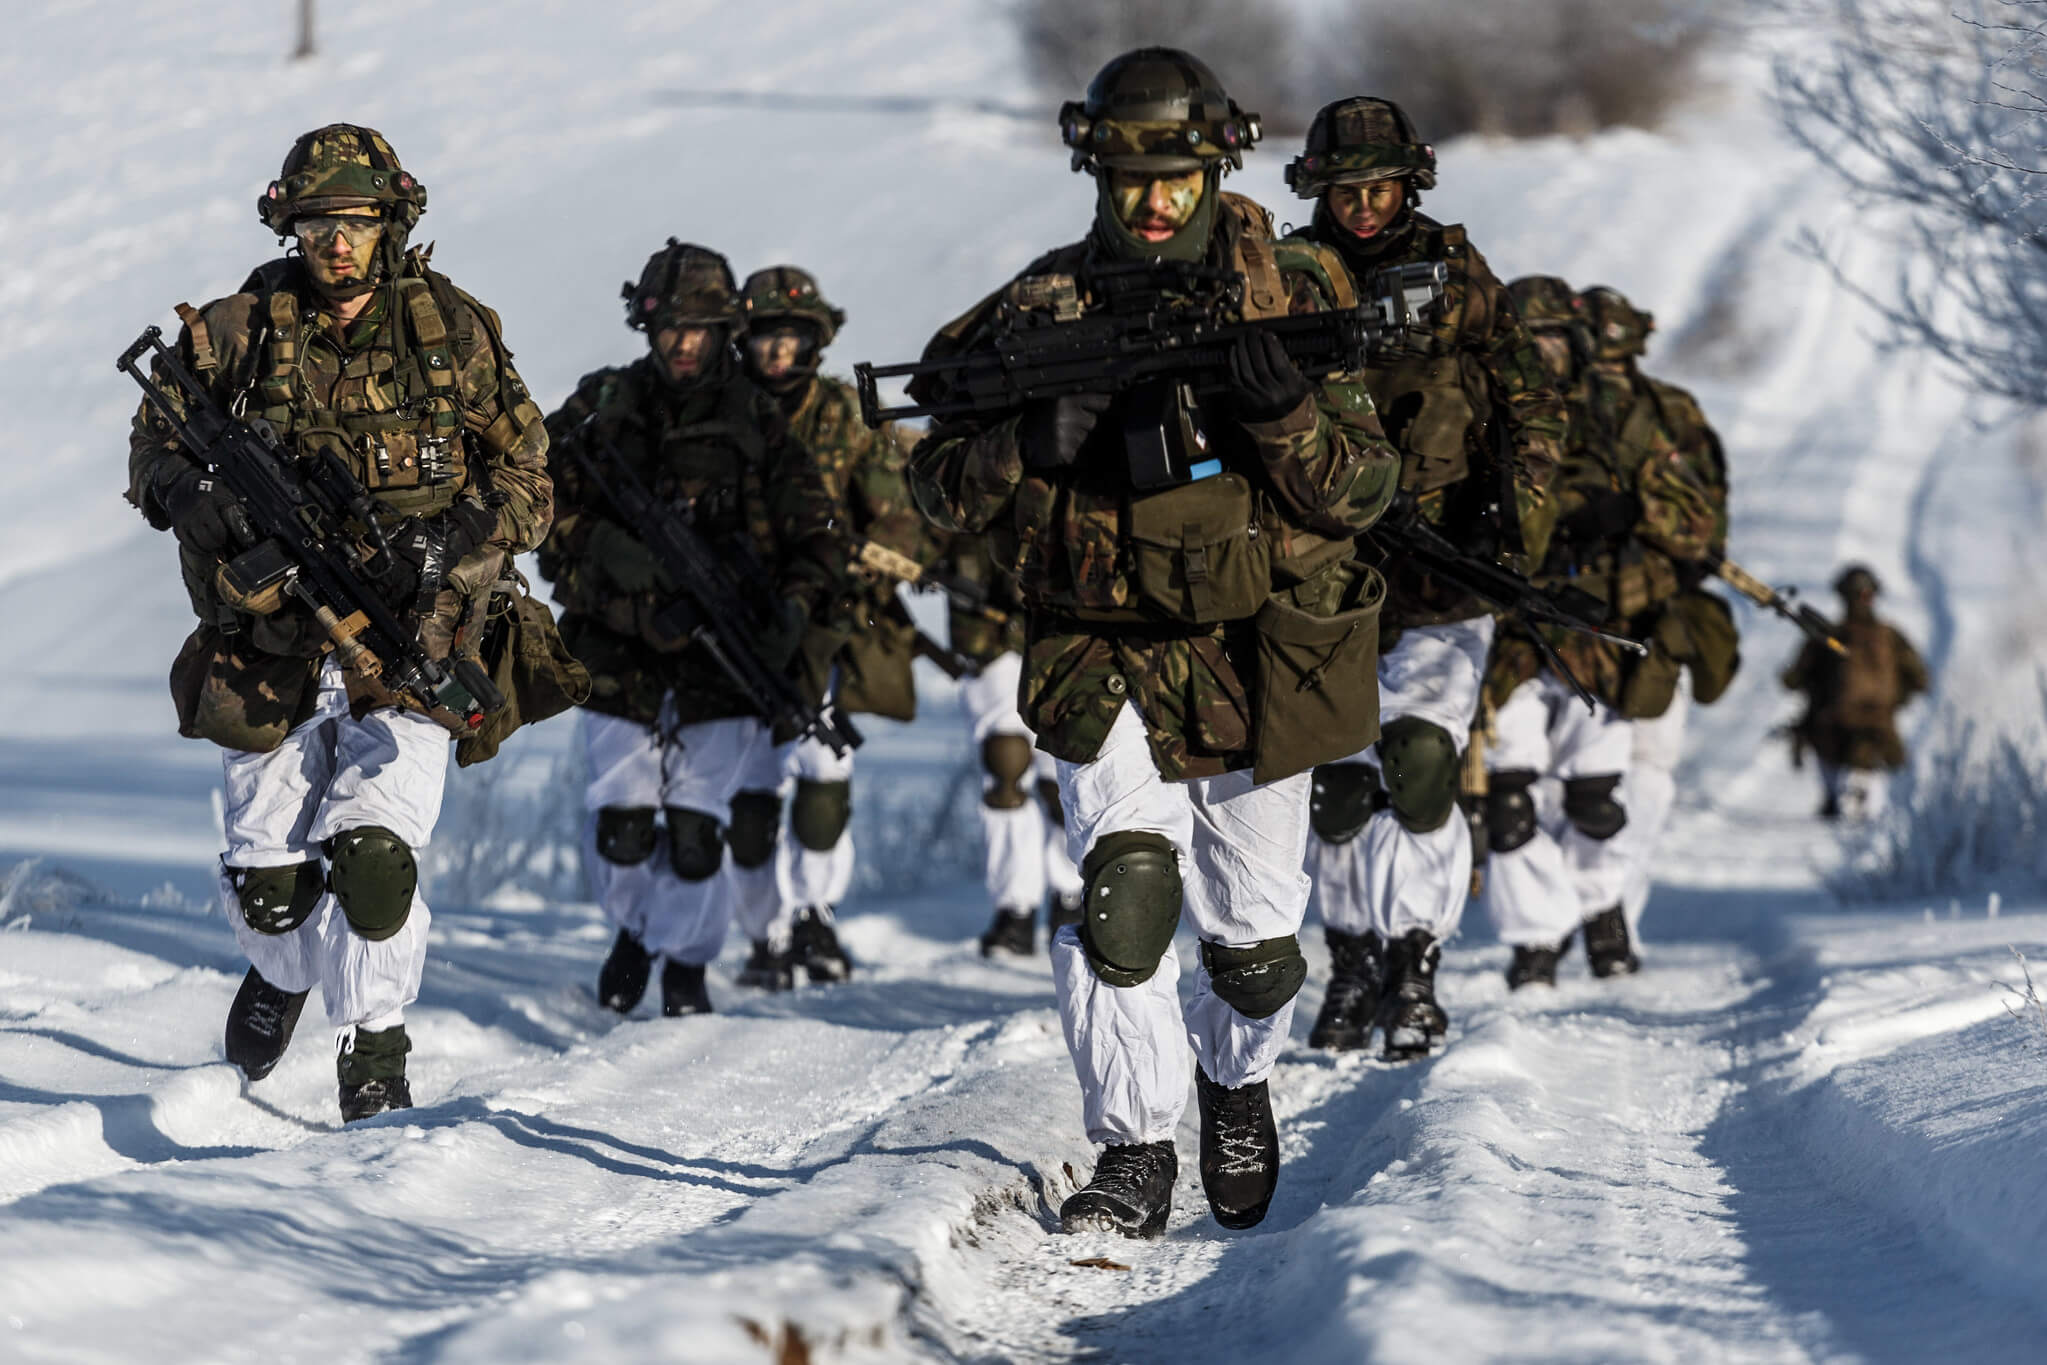 Boxhoorn-Dutch soldiers march through the Lithuanian countryside during Exercise Scorpion Strike, held by NATO forces in Lithuania on Feb. 21, 2018. NATO